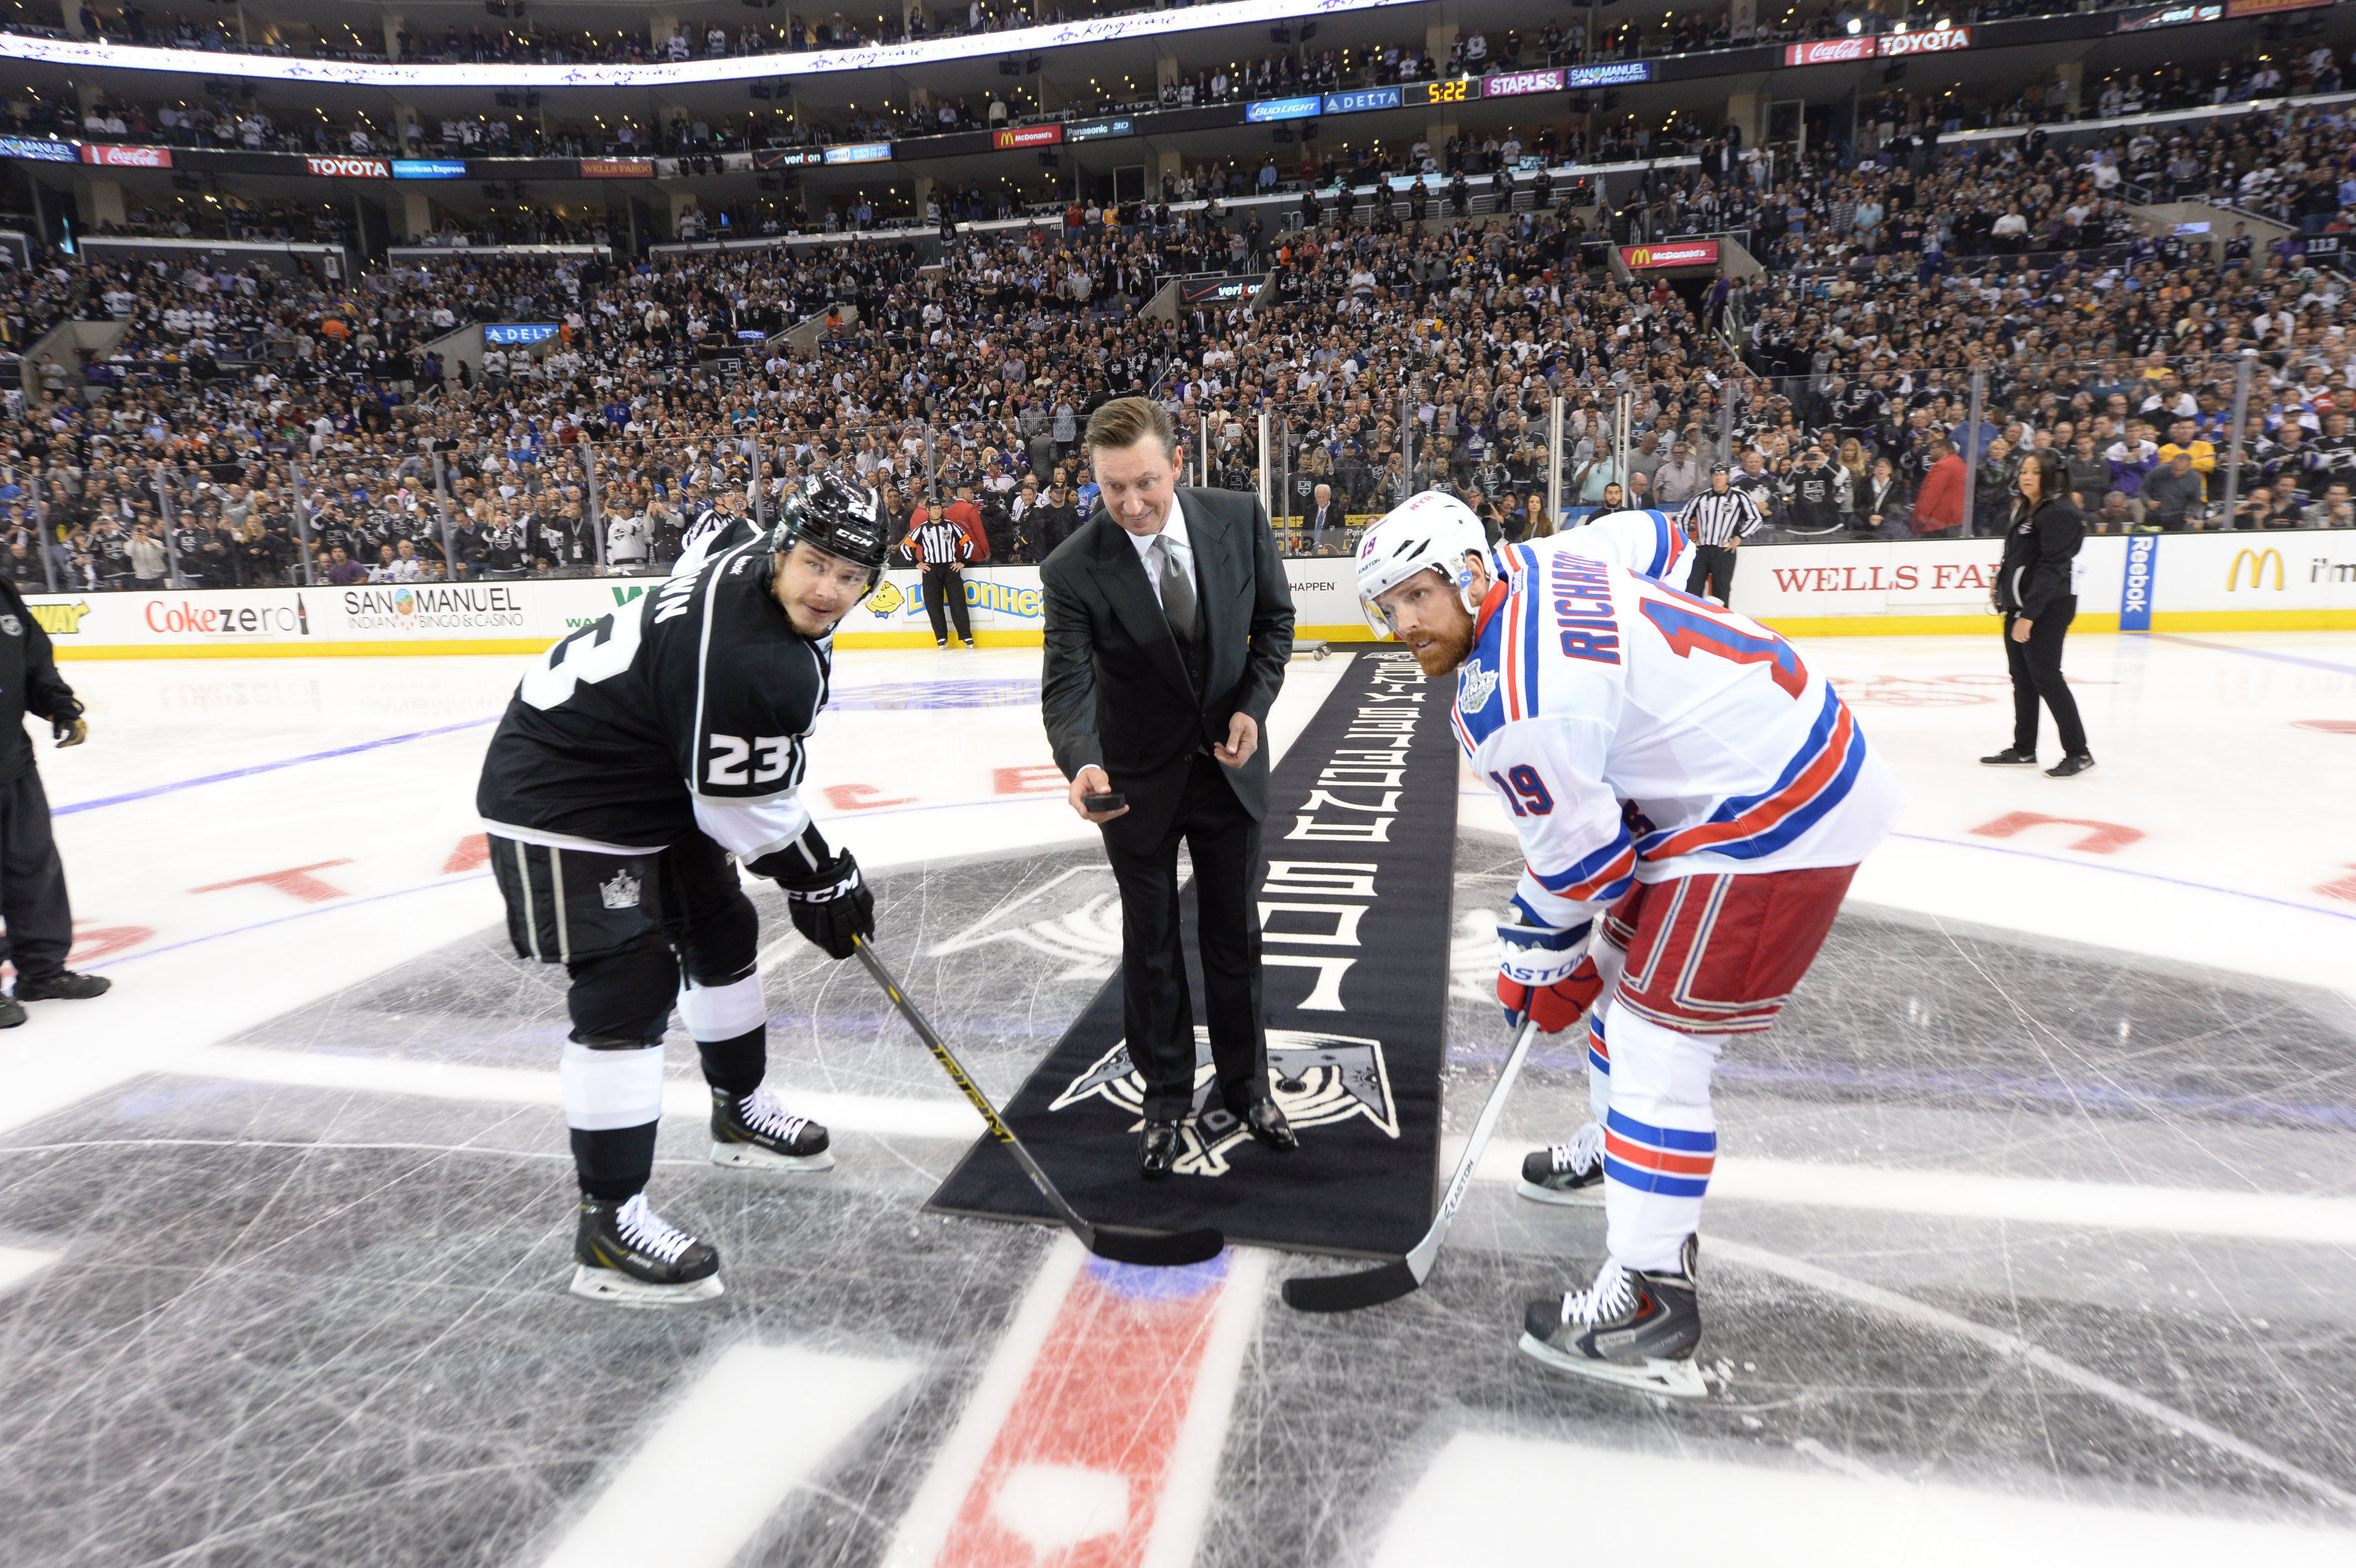 2014 NHL Stanley Cup Final – Game One